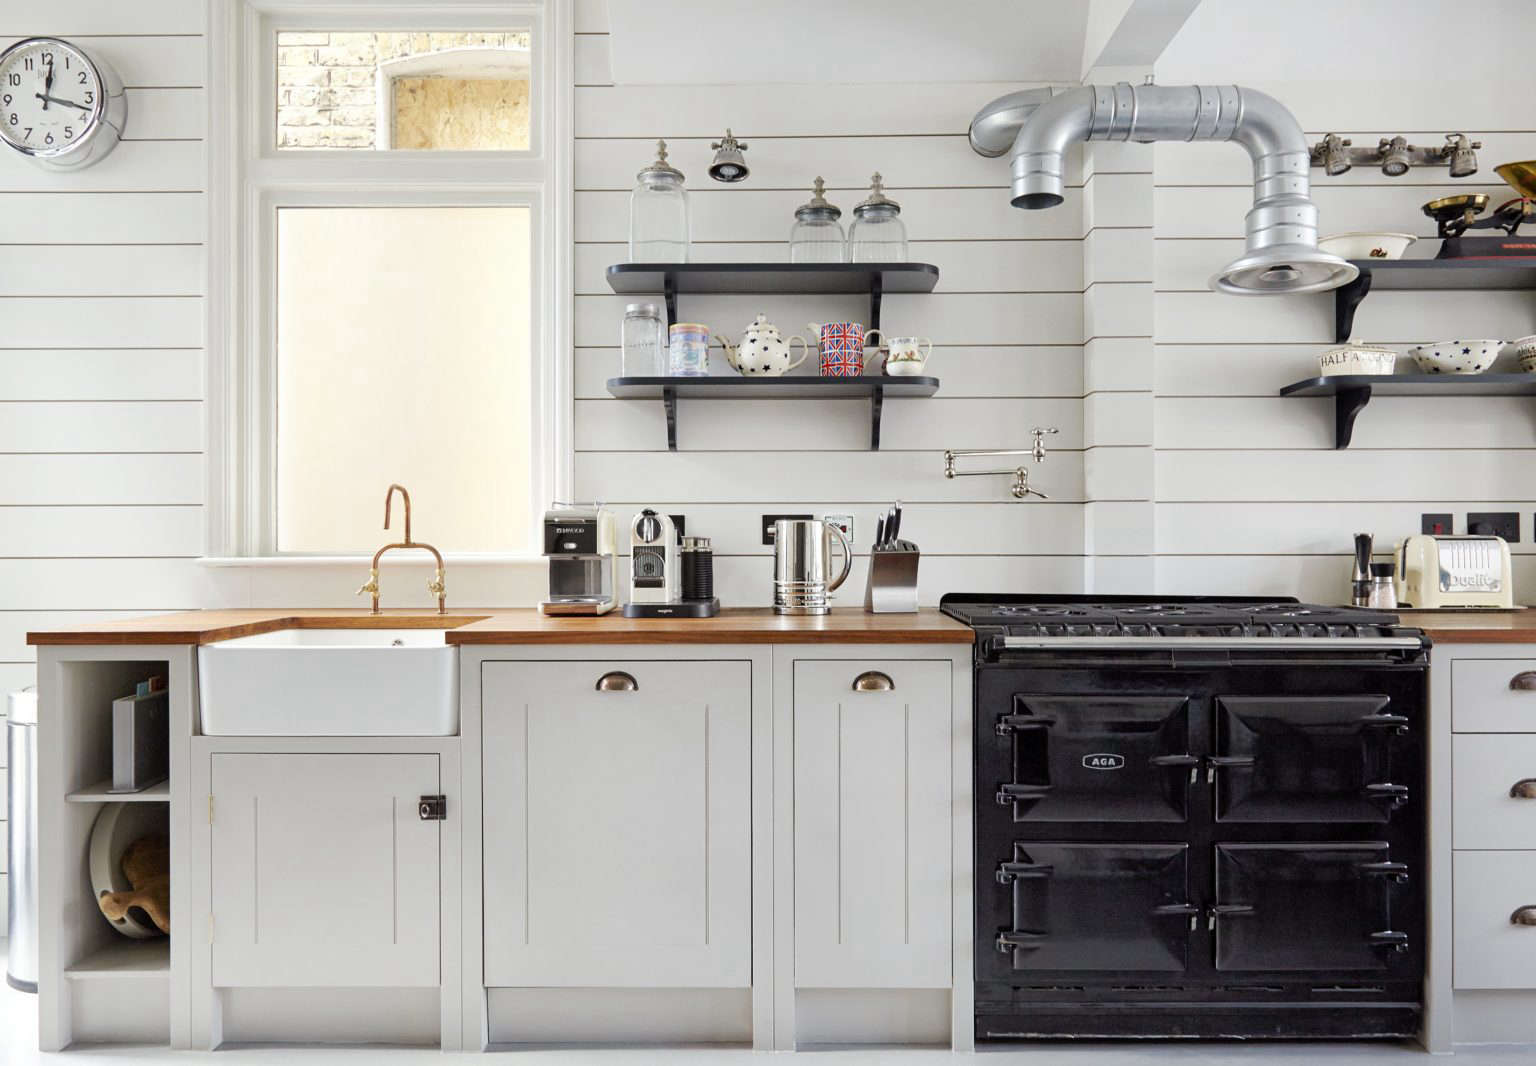 Kitchen of the Week: A Proper English Kitchen with New ...